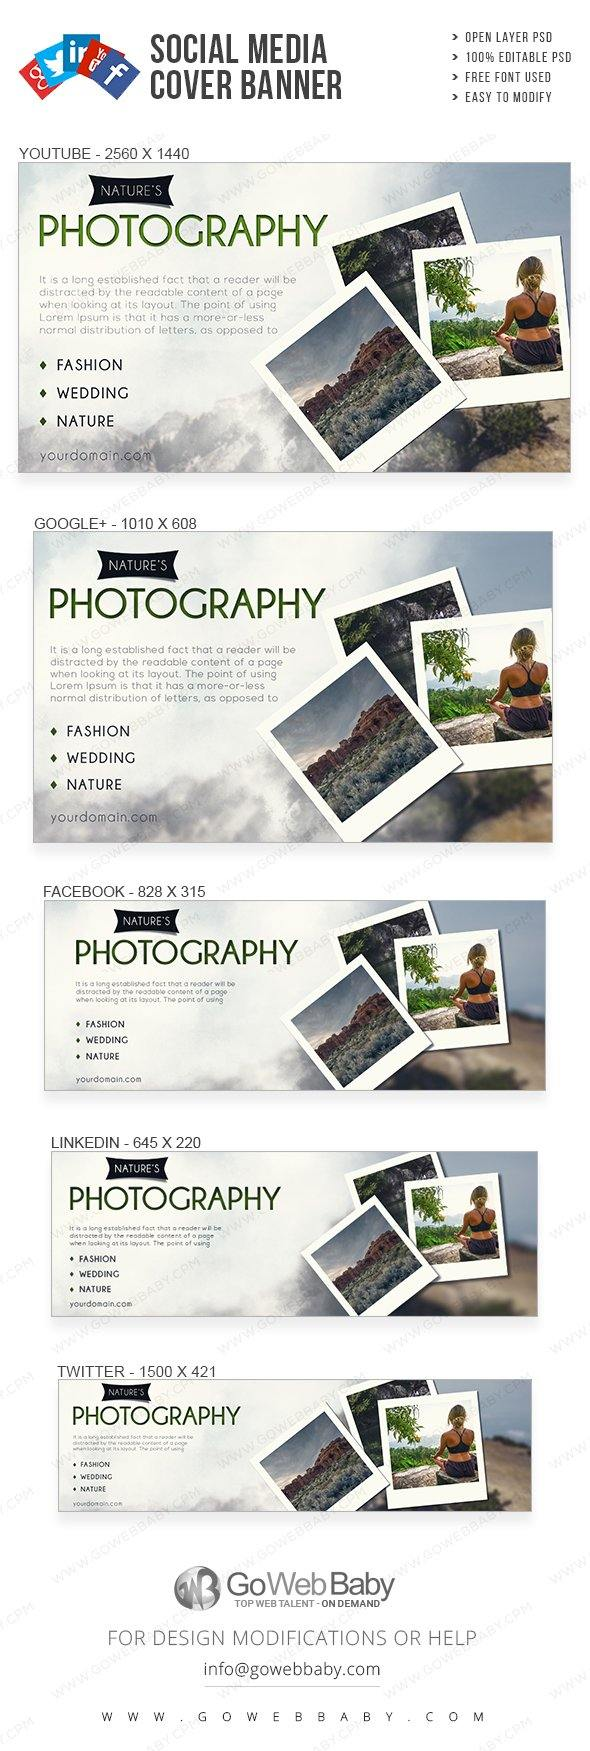 Social Media Cover Banner - Nature's Photography For Website Marketing